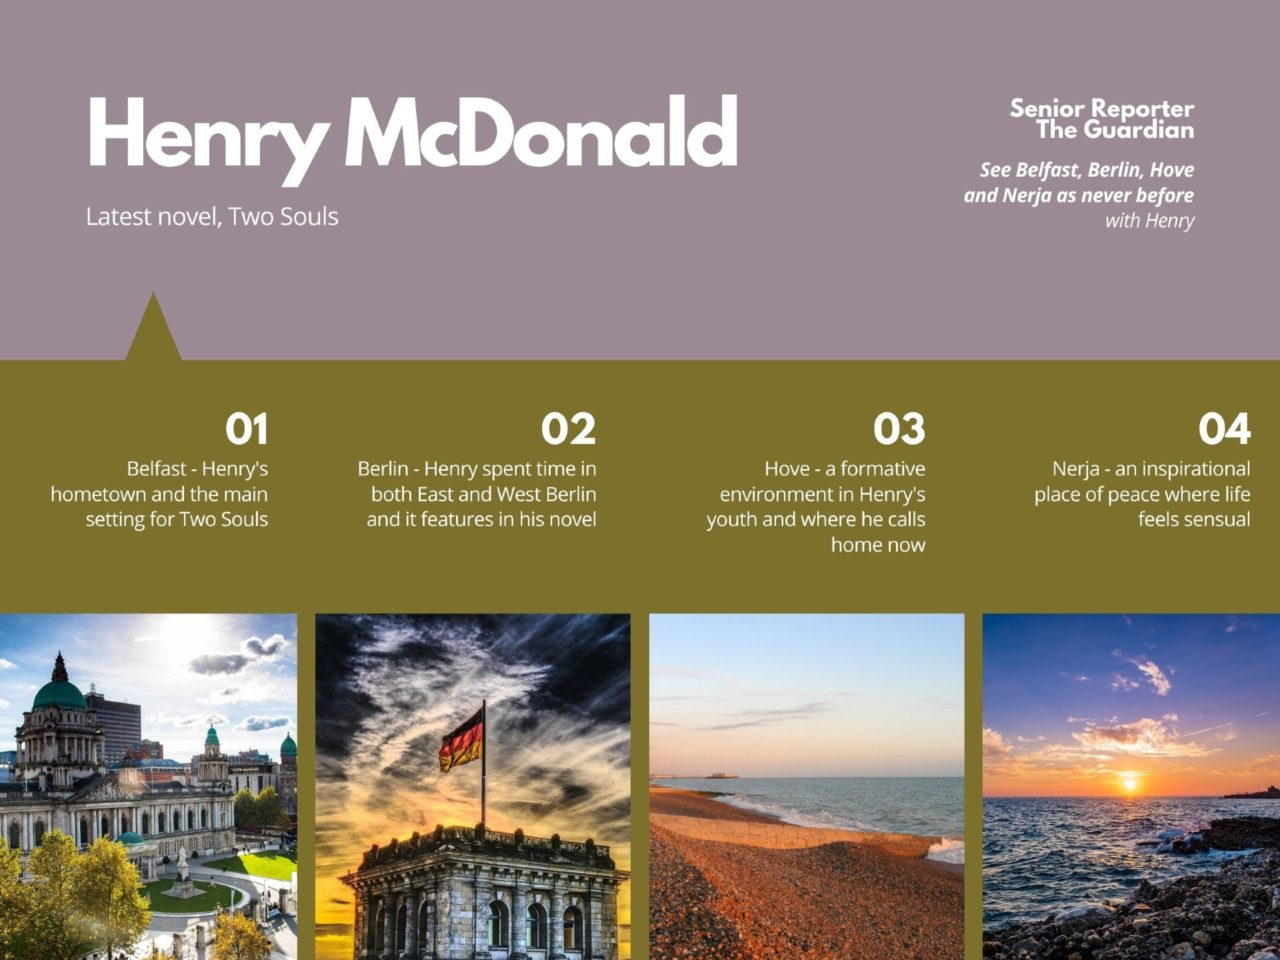 Henry McDonald Travel Inspires